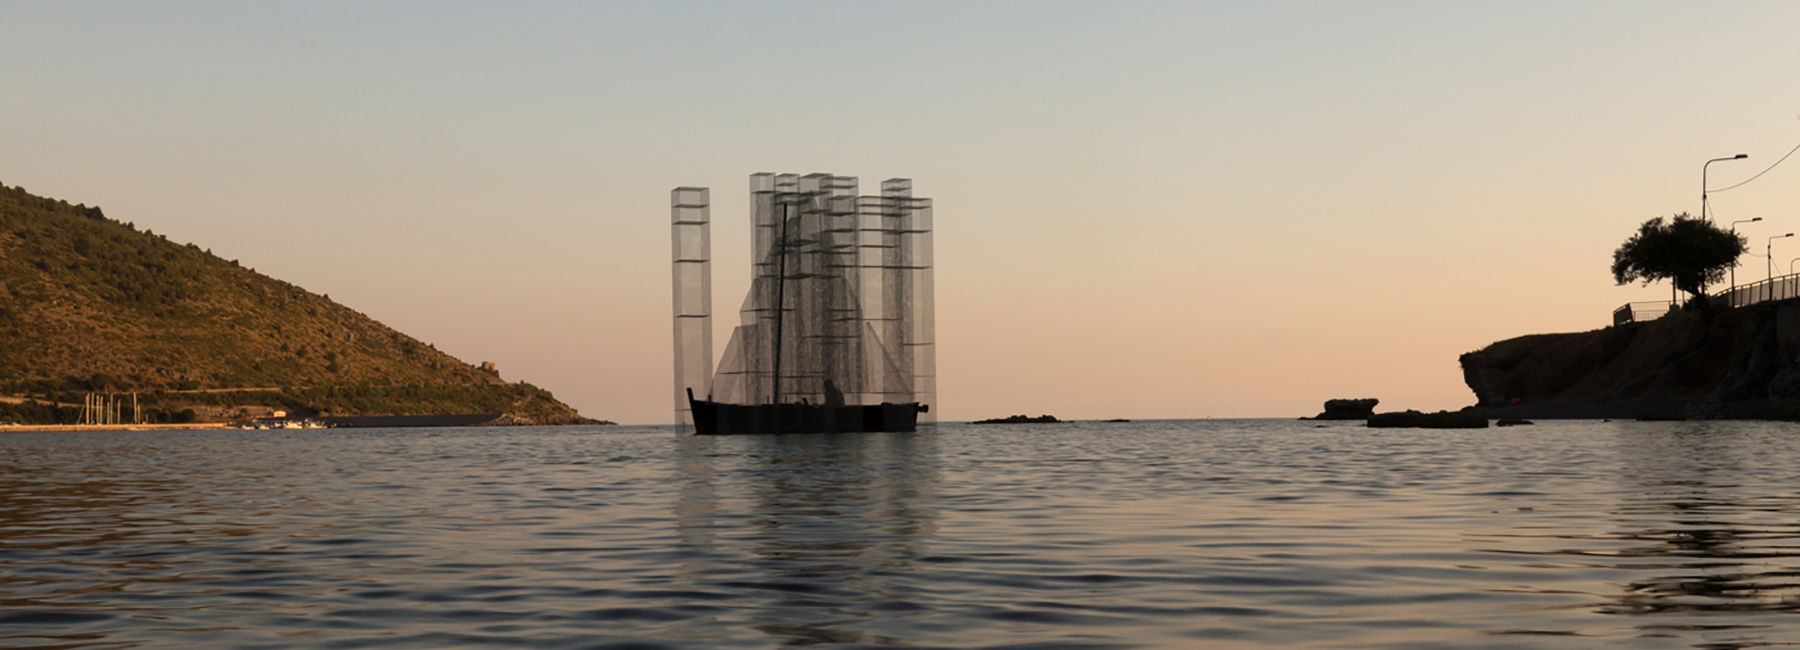 Ghostly Floating Installation by Edoardo Tresoldi